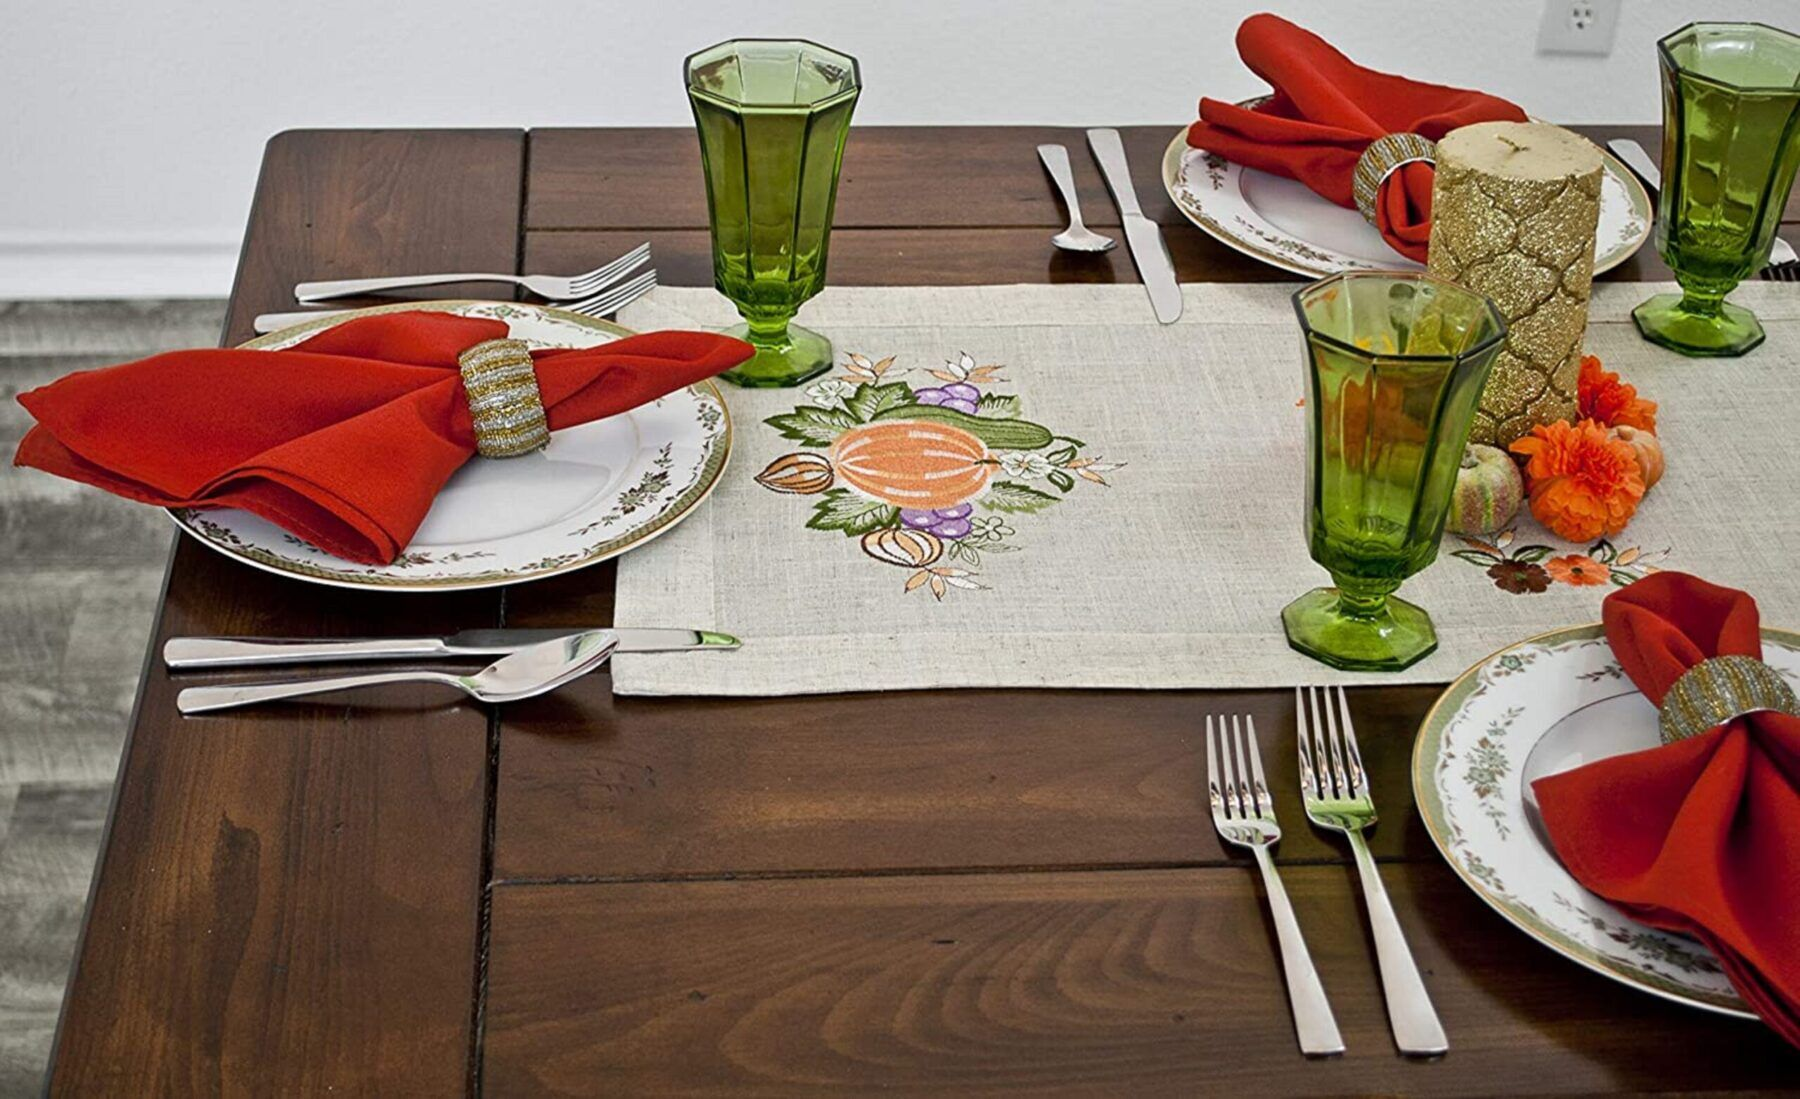 fall embroidery pumpkin and grapes table runner – 14.5″ x 51.1″